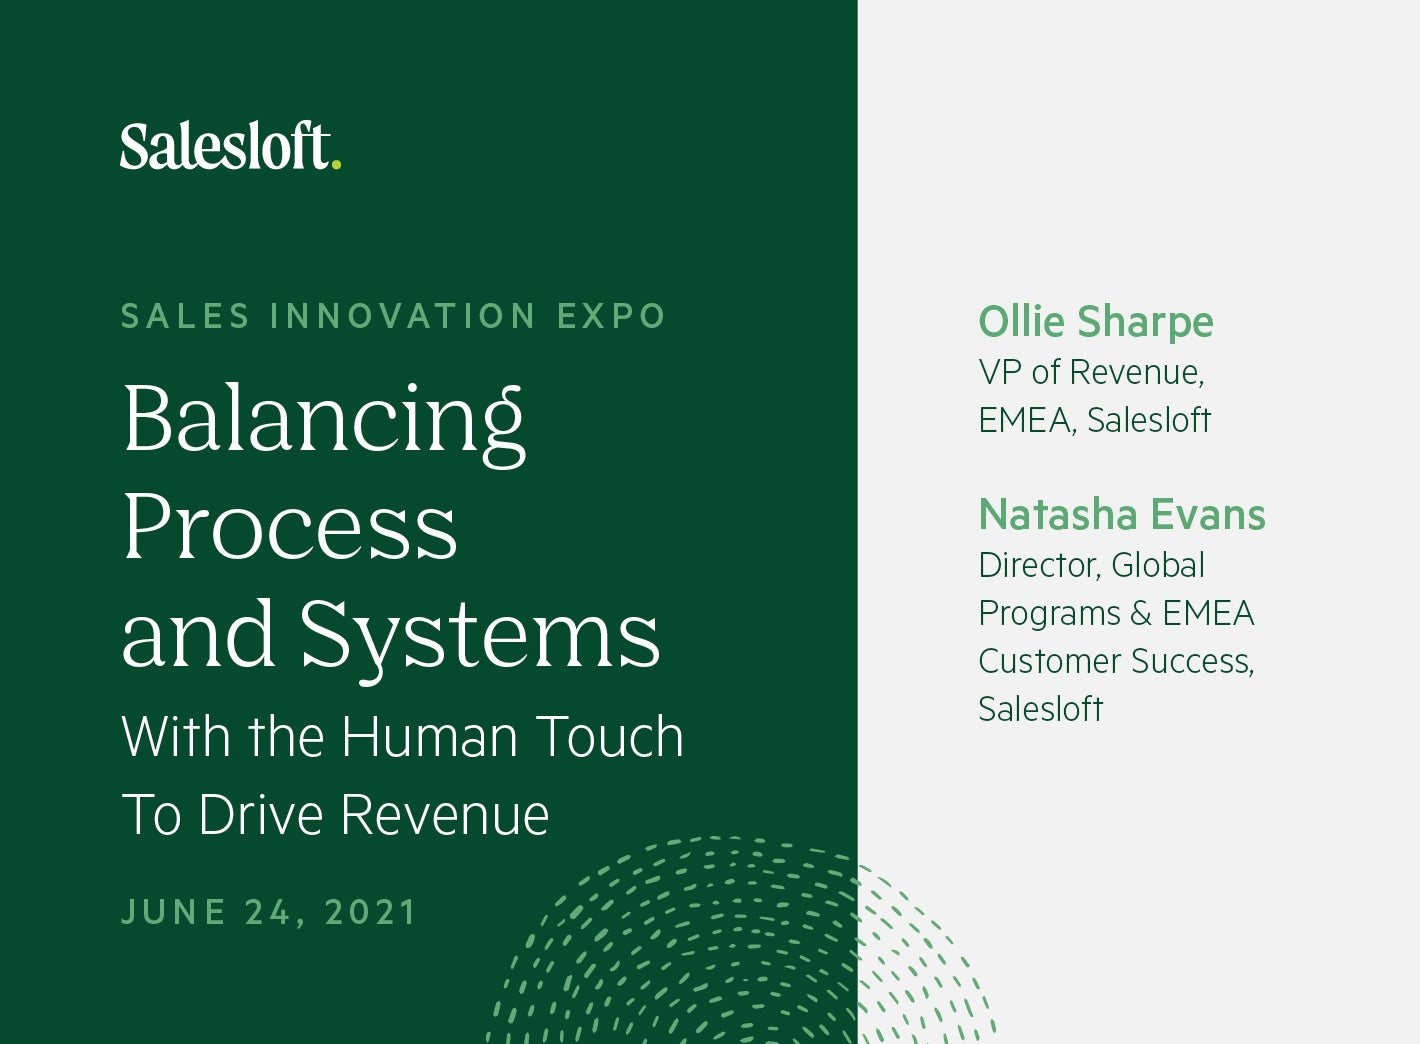 Balancing Process and Systems with the Human Touch To Drive Revenue